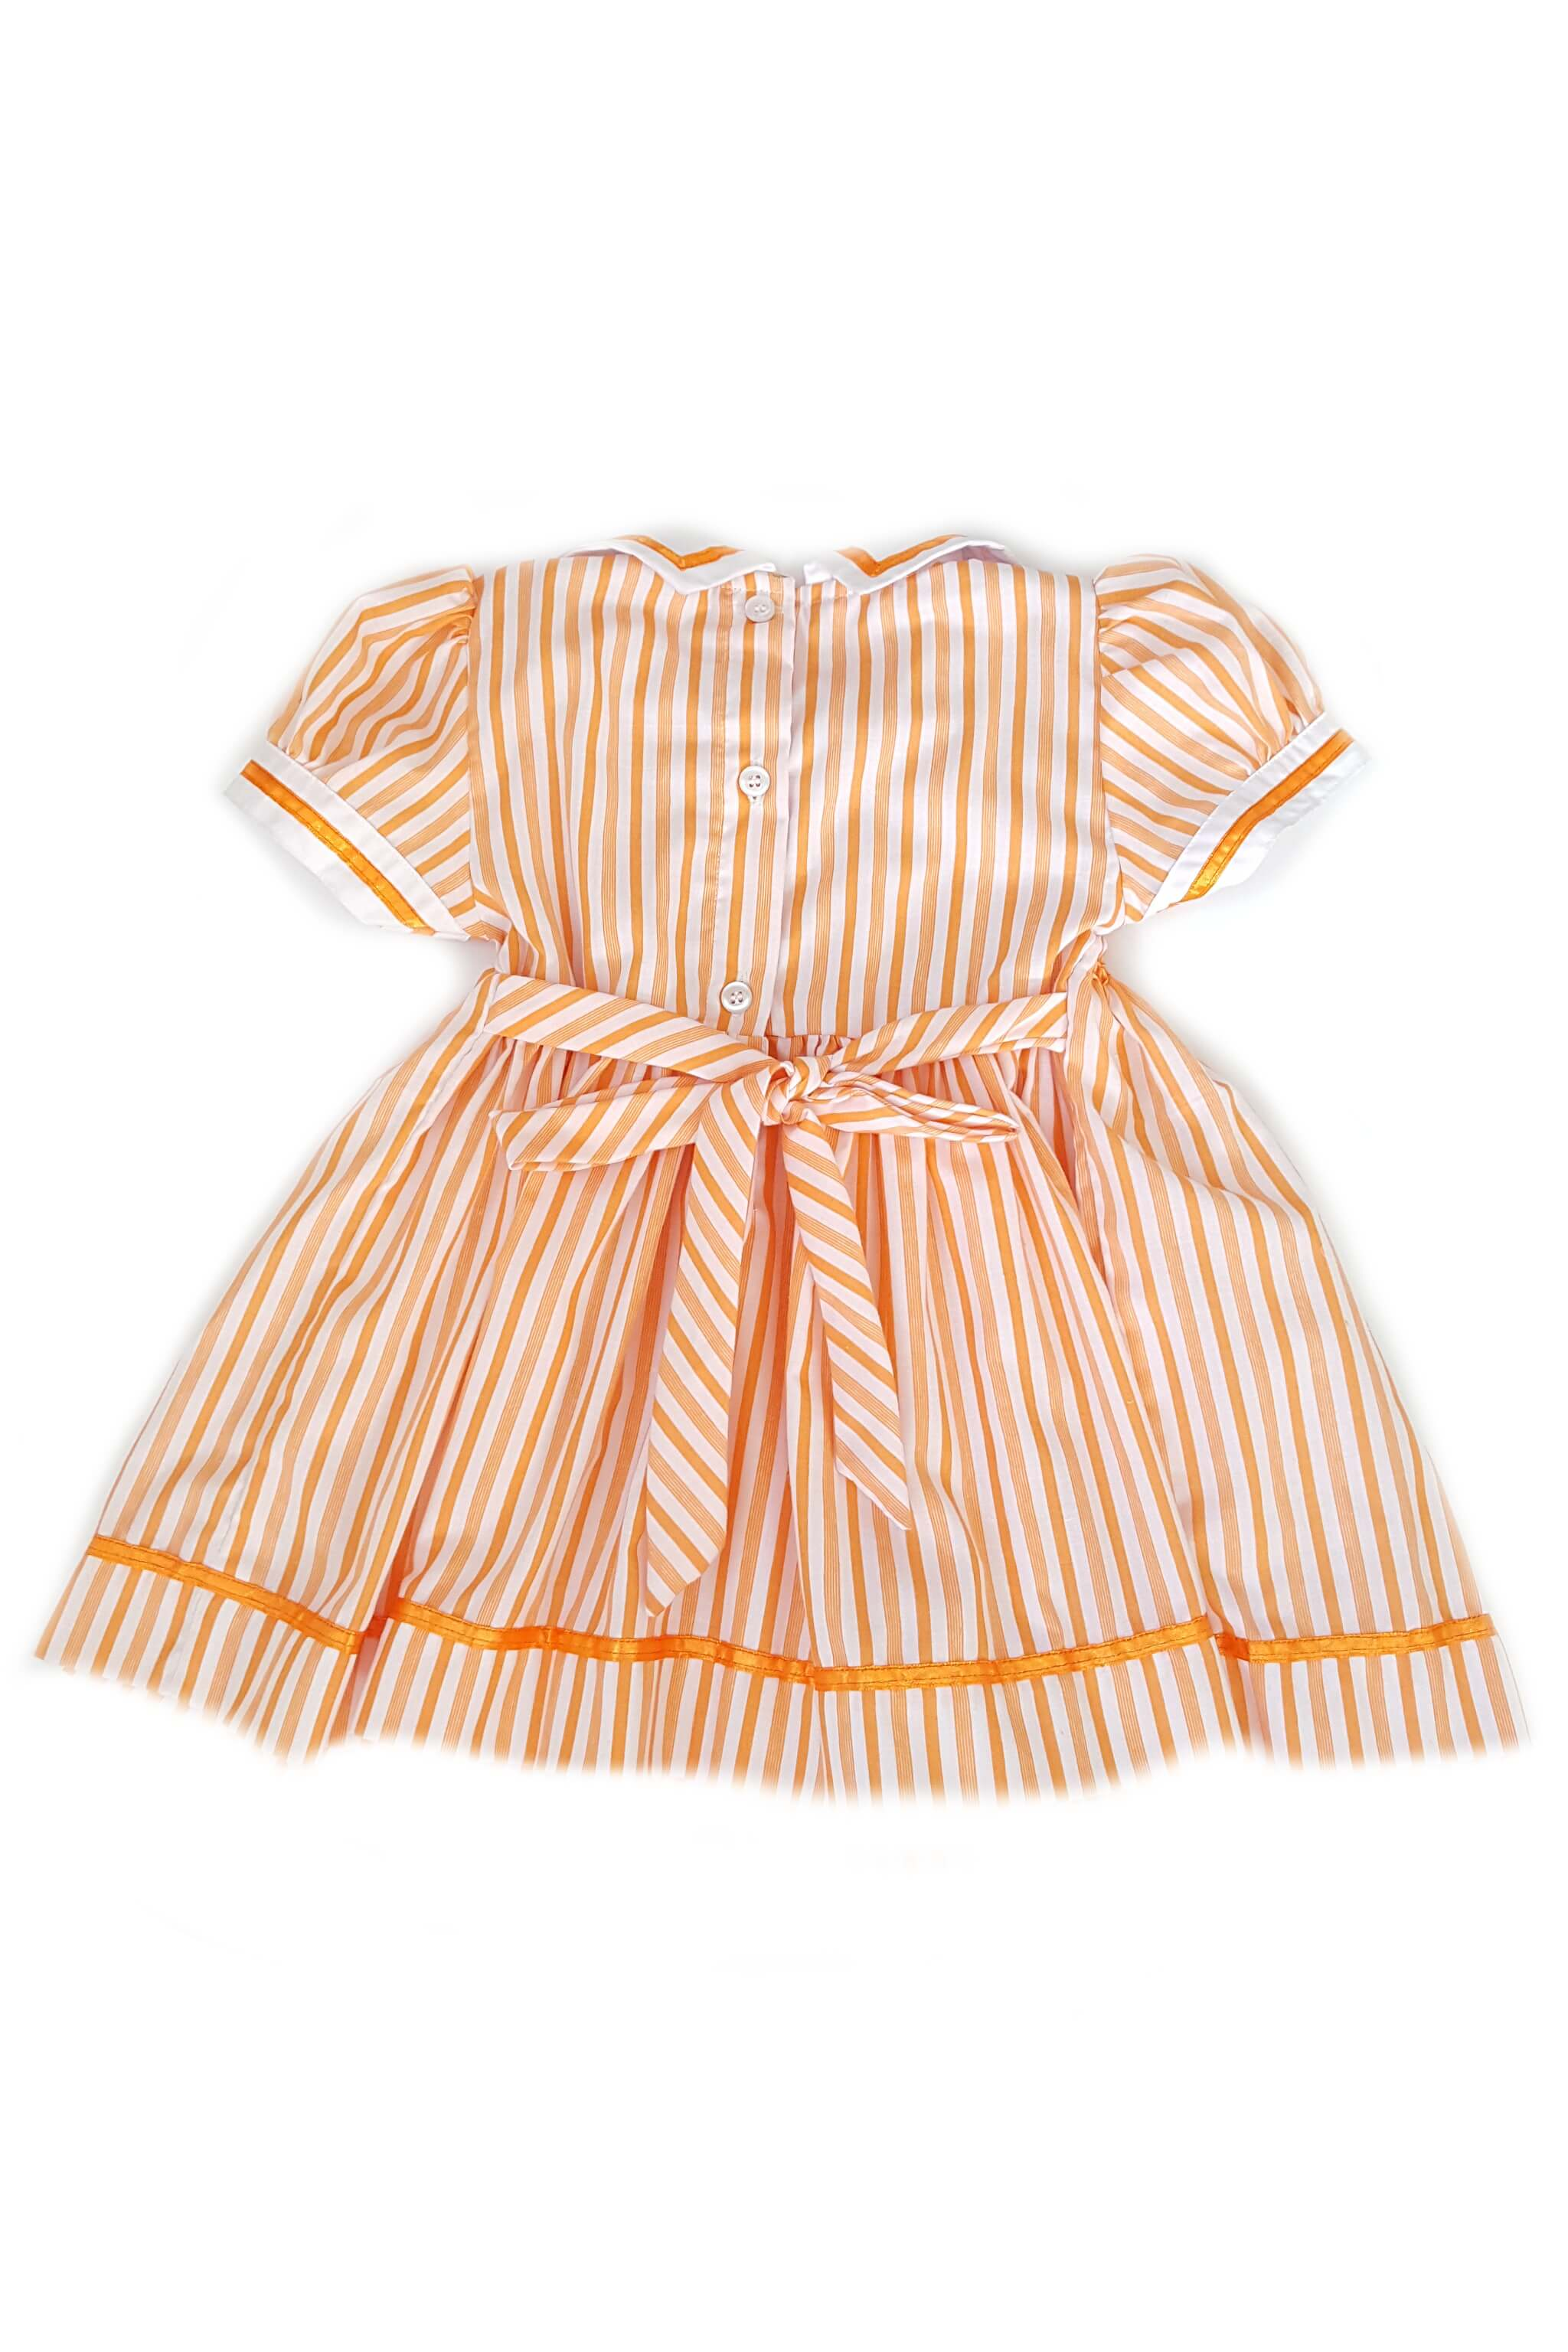 Back of pumpkin orange striped Pauline dress featuring a nautical white collar with orange trim and hand-smocked bodice with button back and sash to tie at the waist